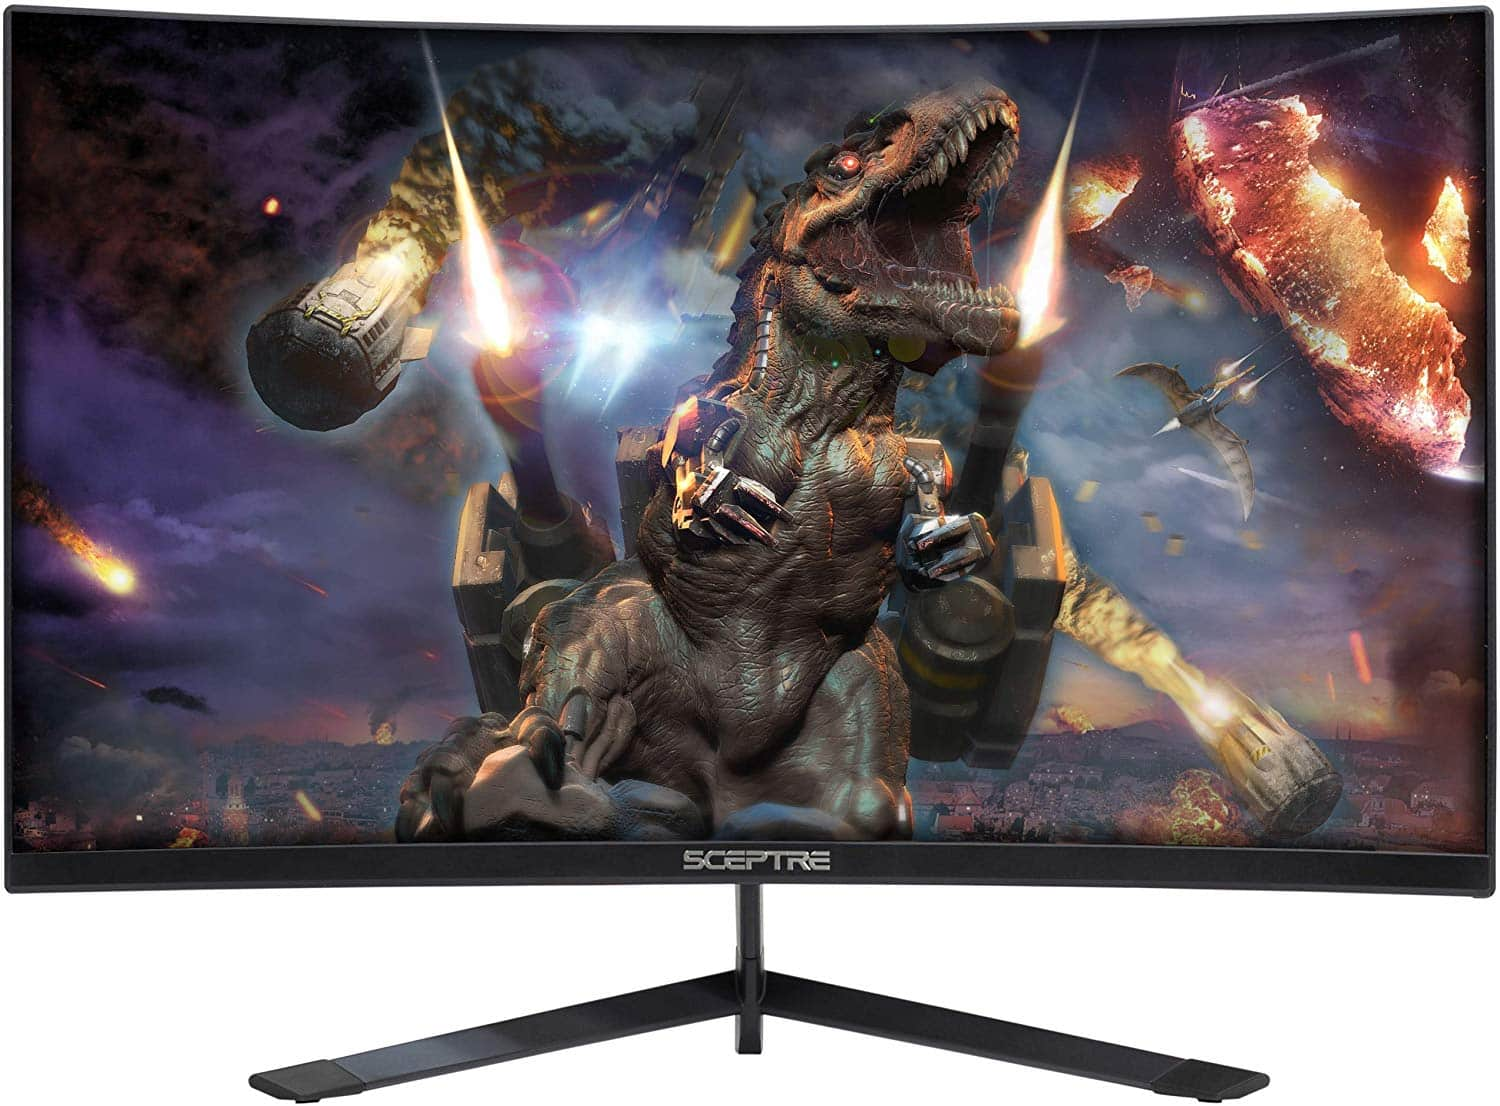 Sceptre 27-inch Curved 144Hz Gaming LED Monitor (Edge-Less)